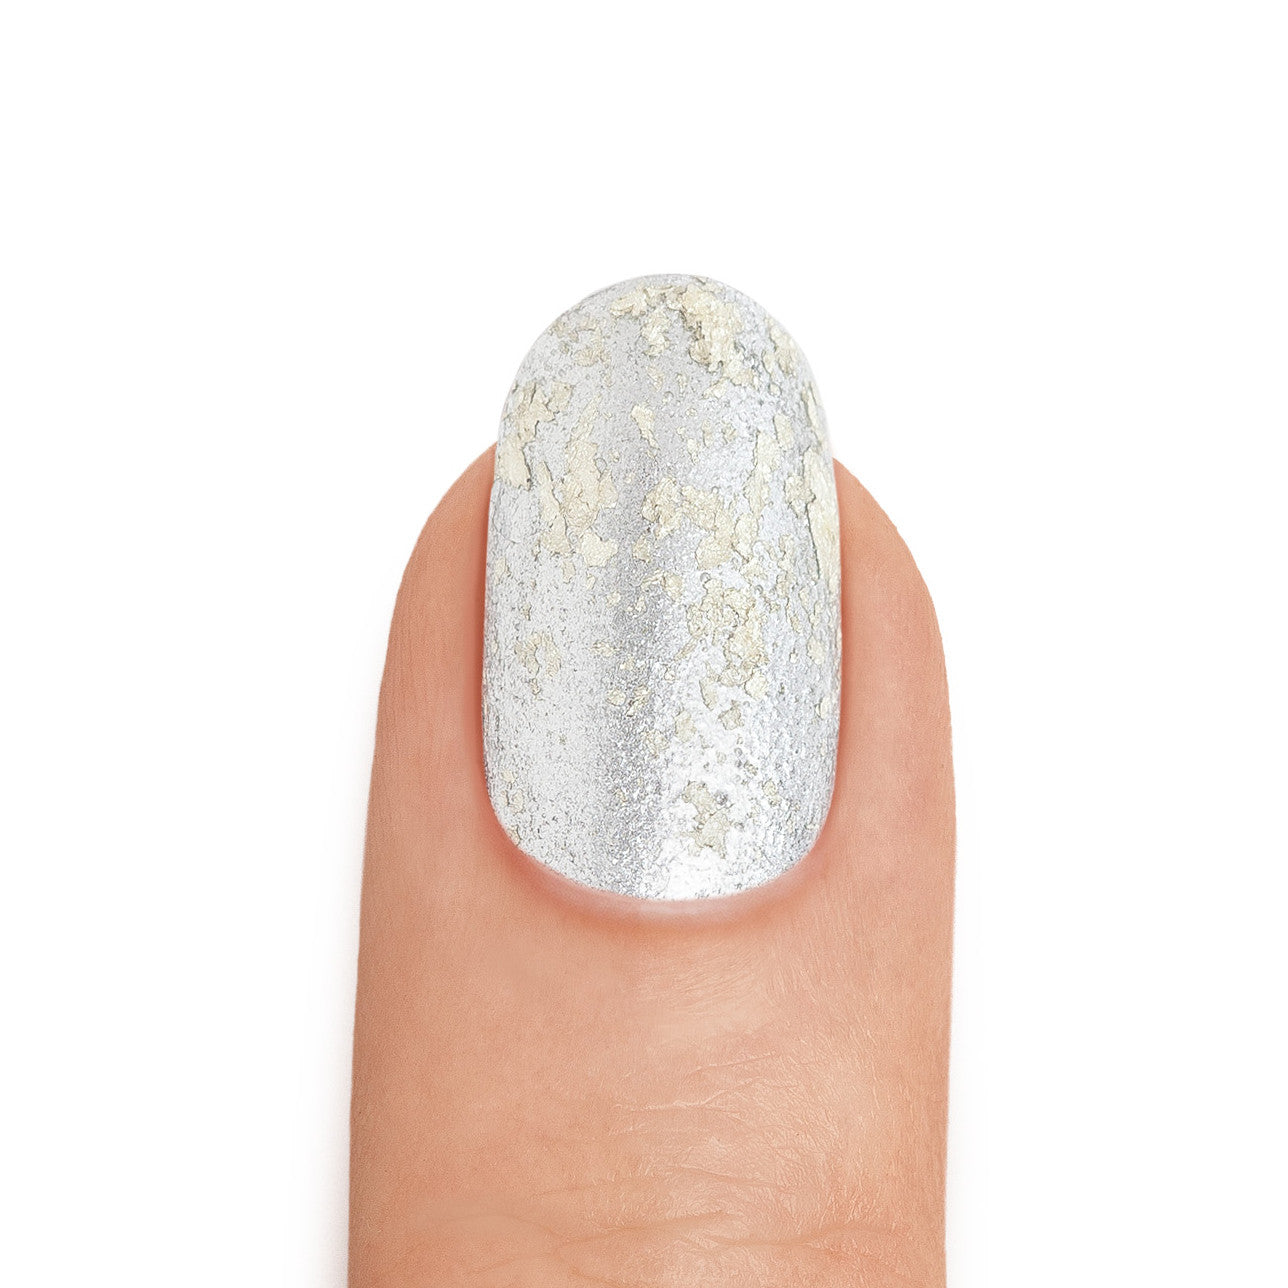 Real White Gold Leaf Top Coat over Aluminum Nail Polish - MINE Luxury Nail Lacquer